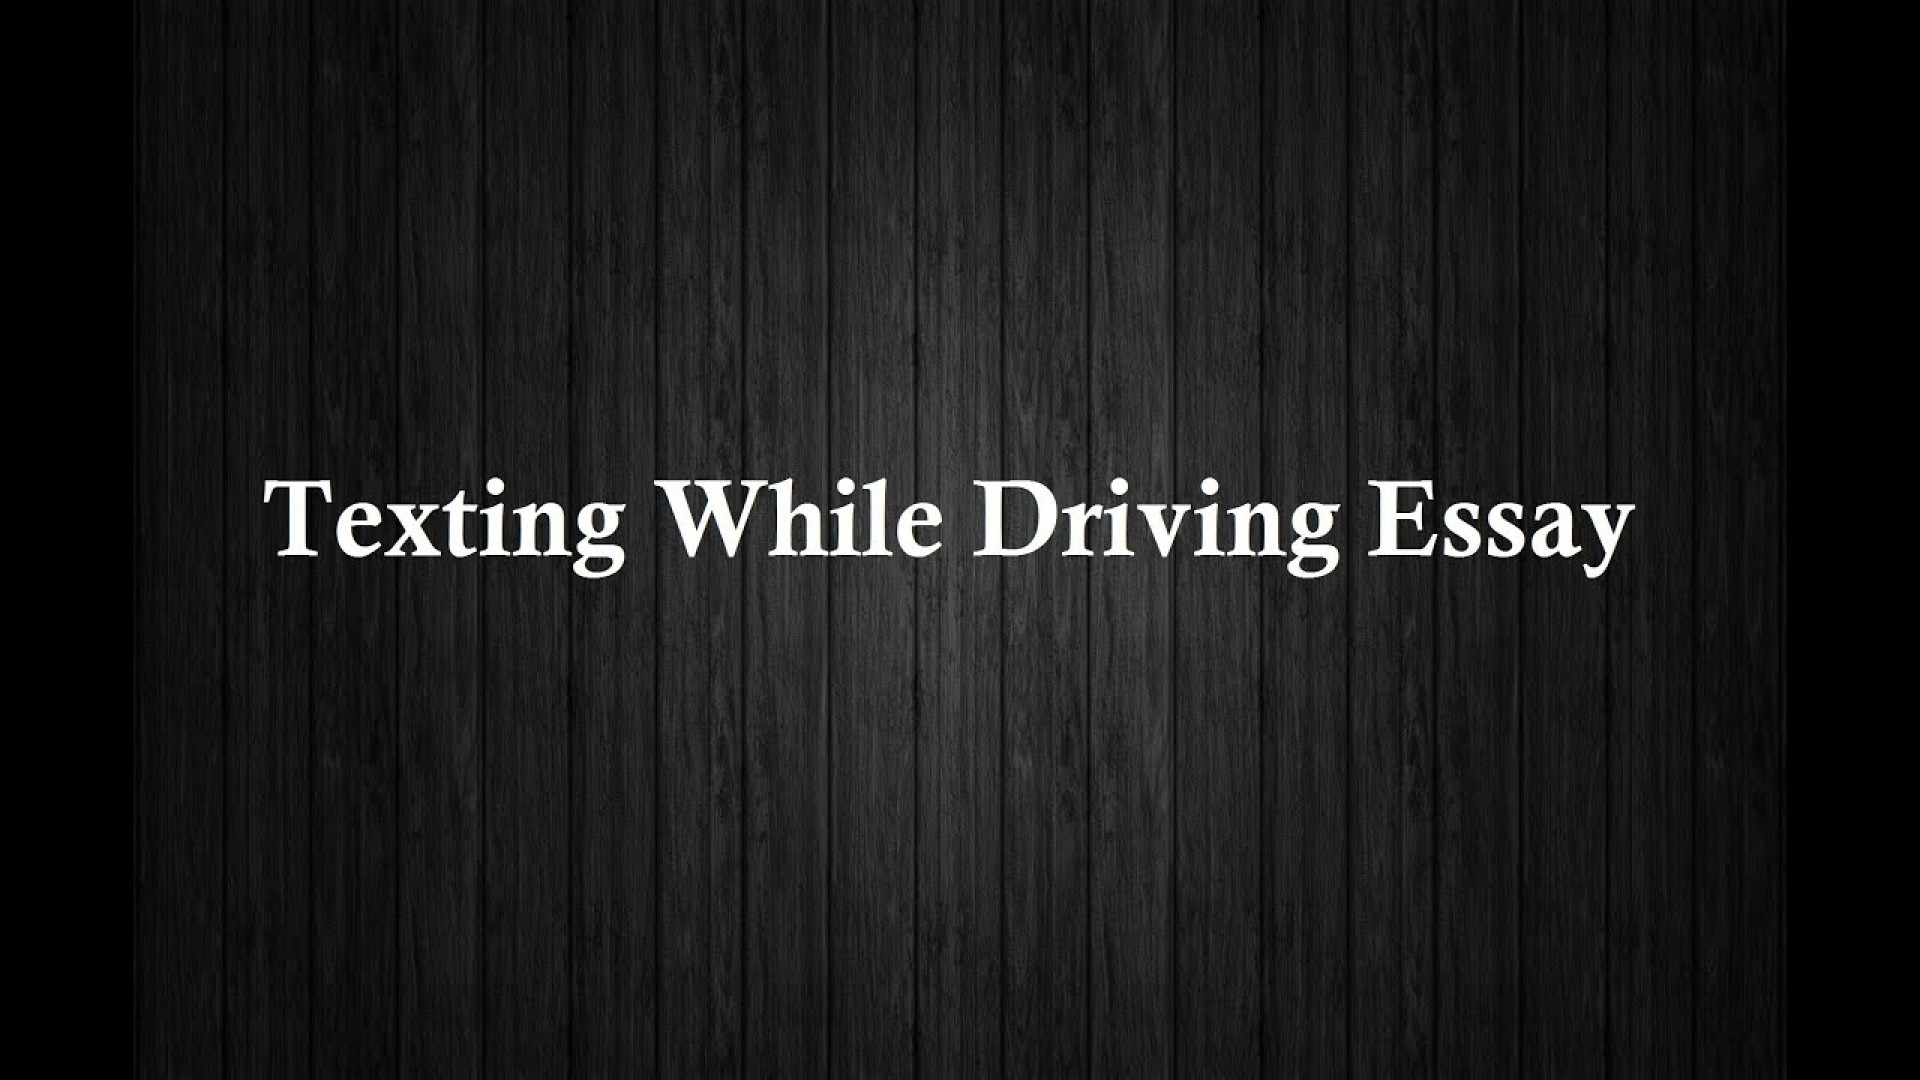 010 Essay Example Maxresdefault Texting And Singular Driving Essays Argumentative Scholarship Persuasive Outline 1920